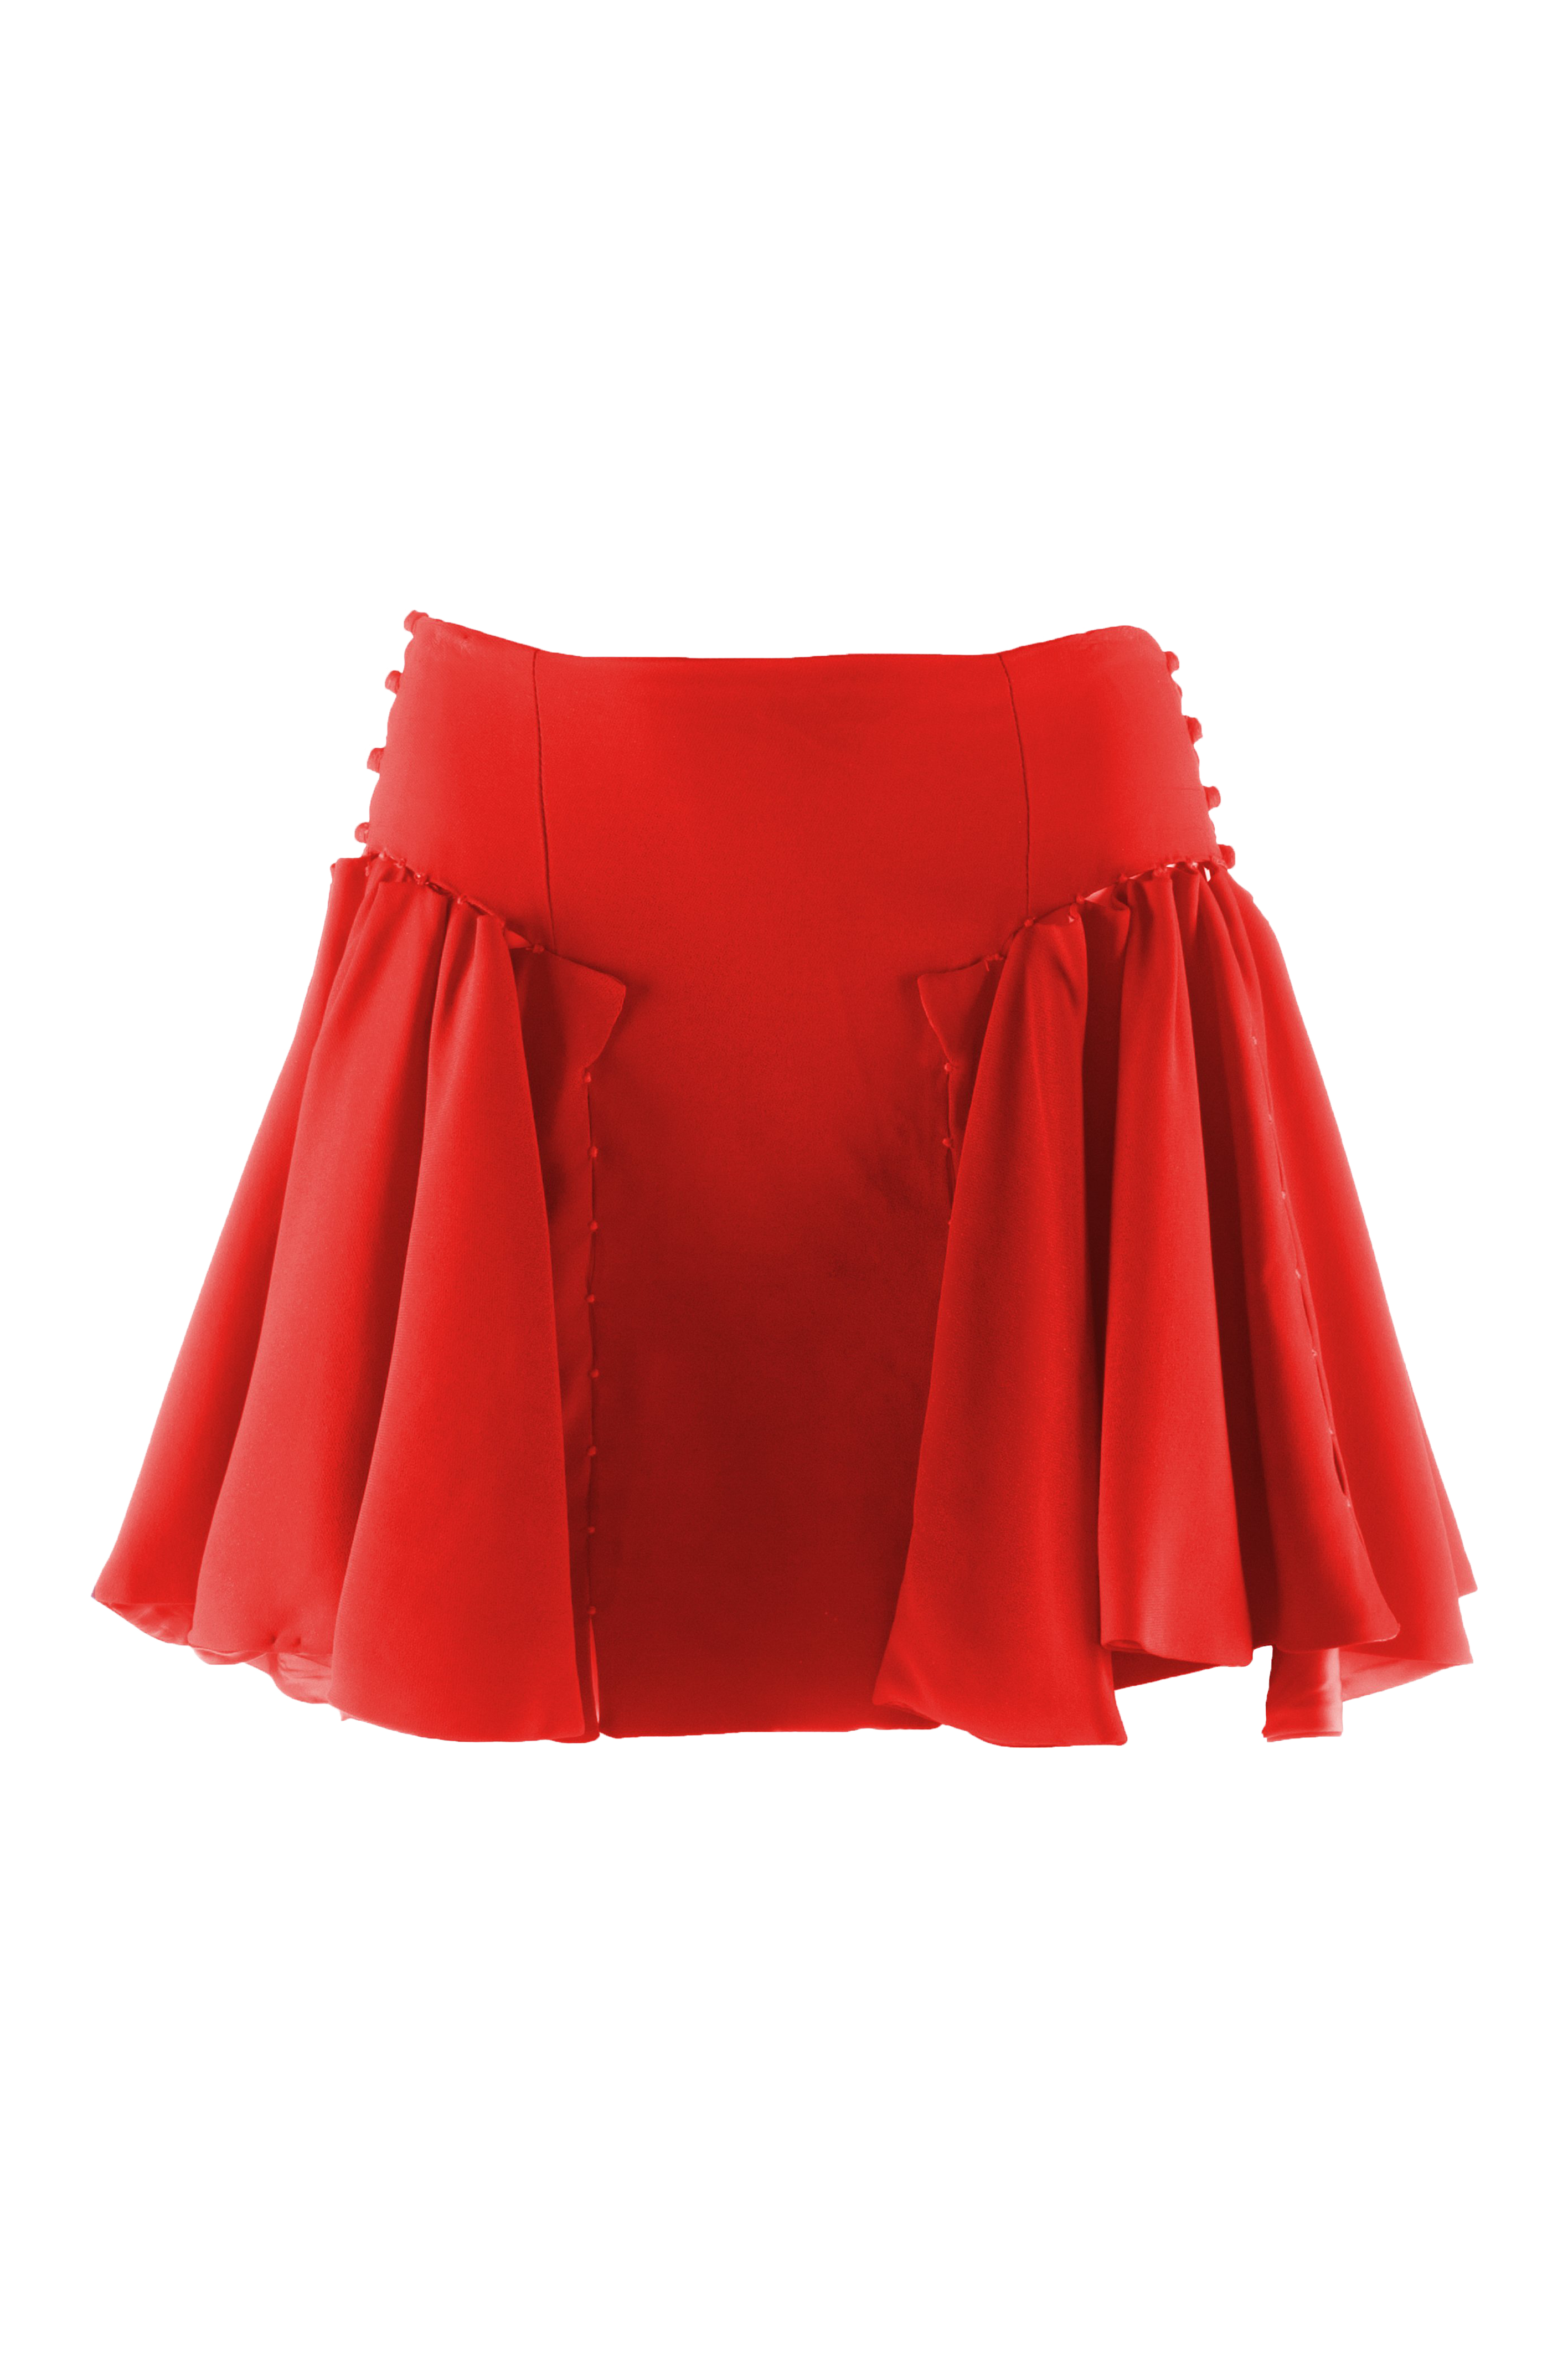 Red skirt png. Frills a w